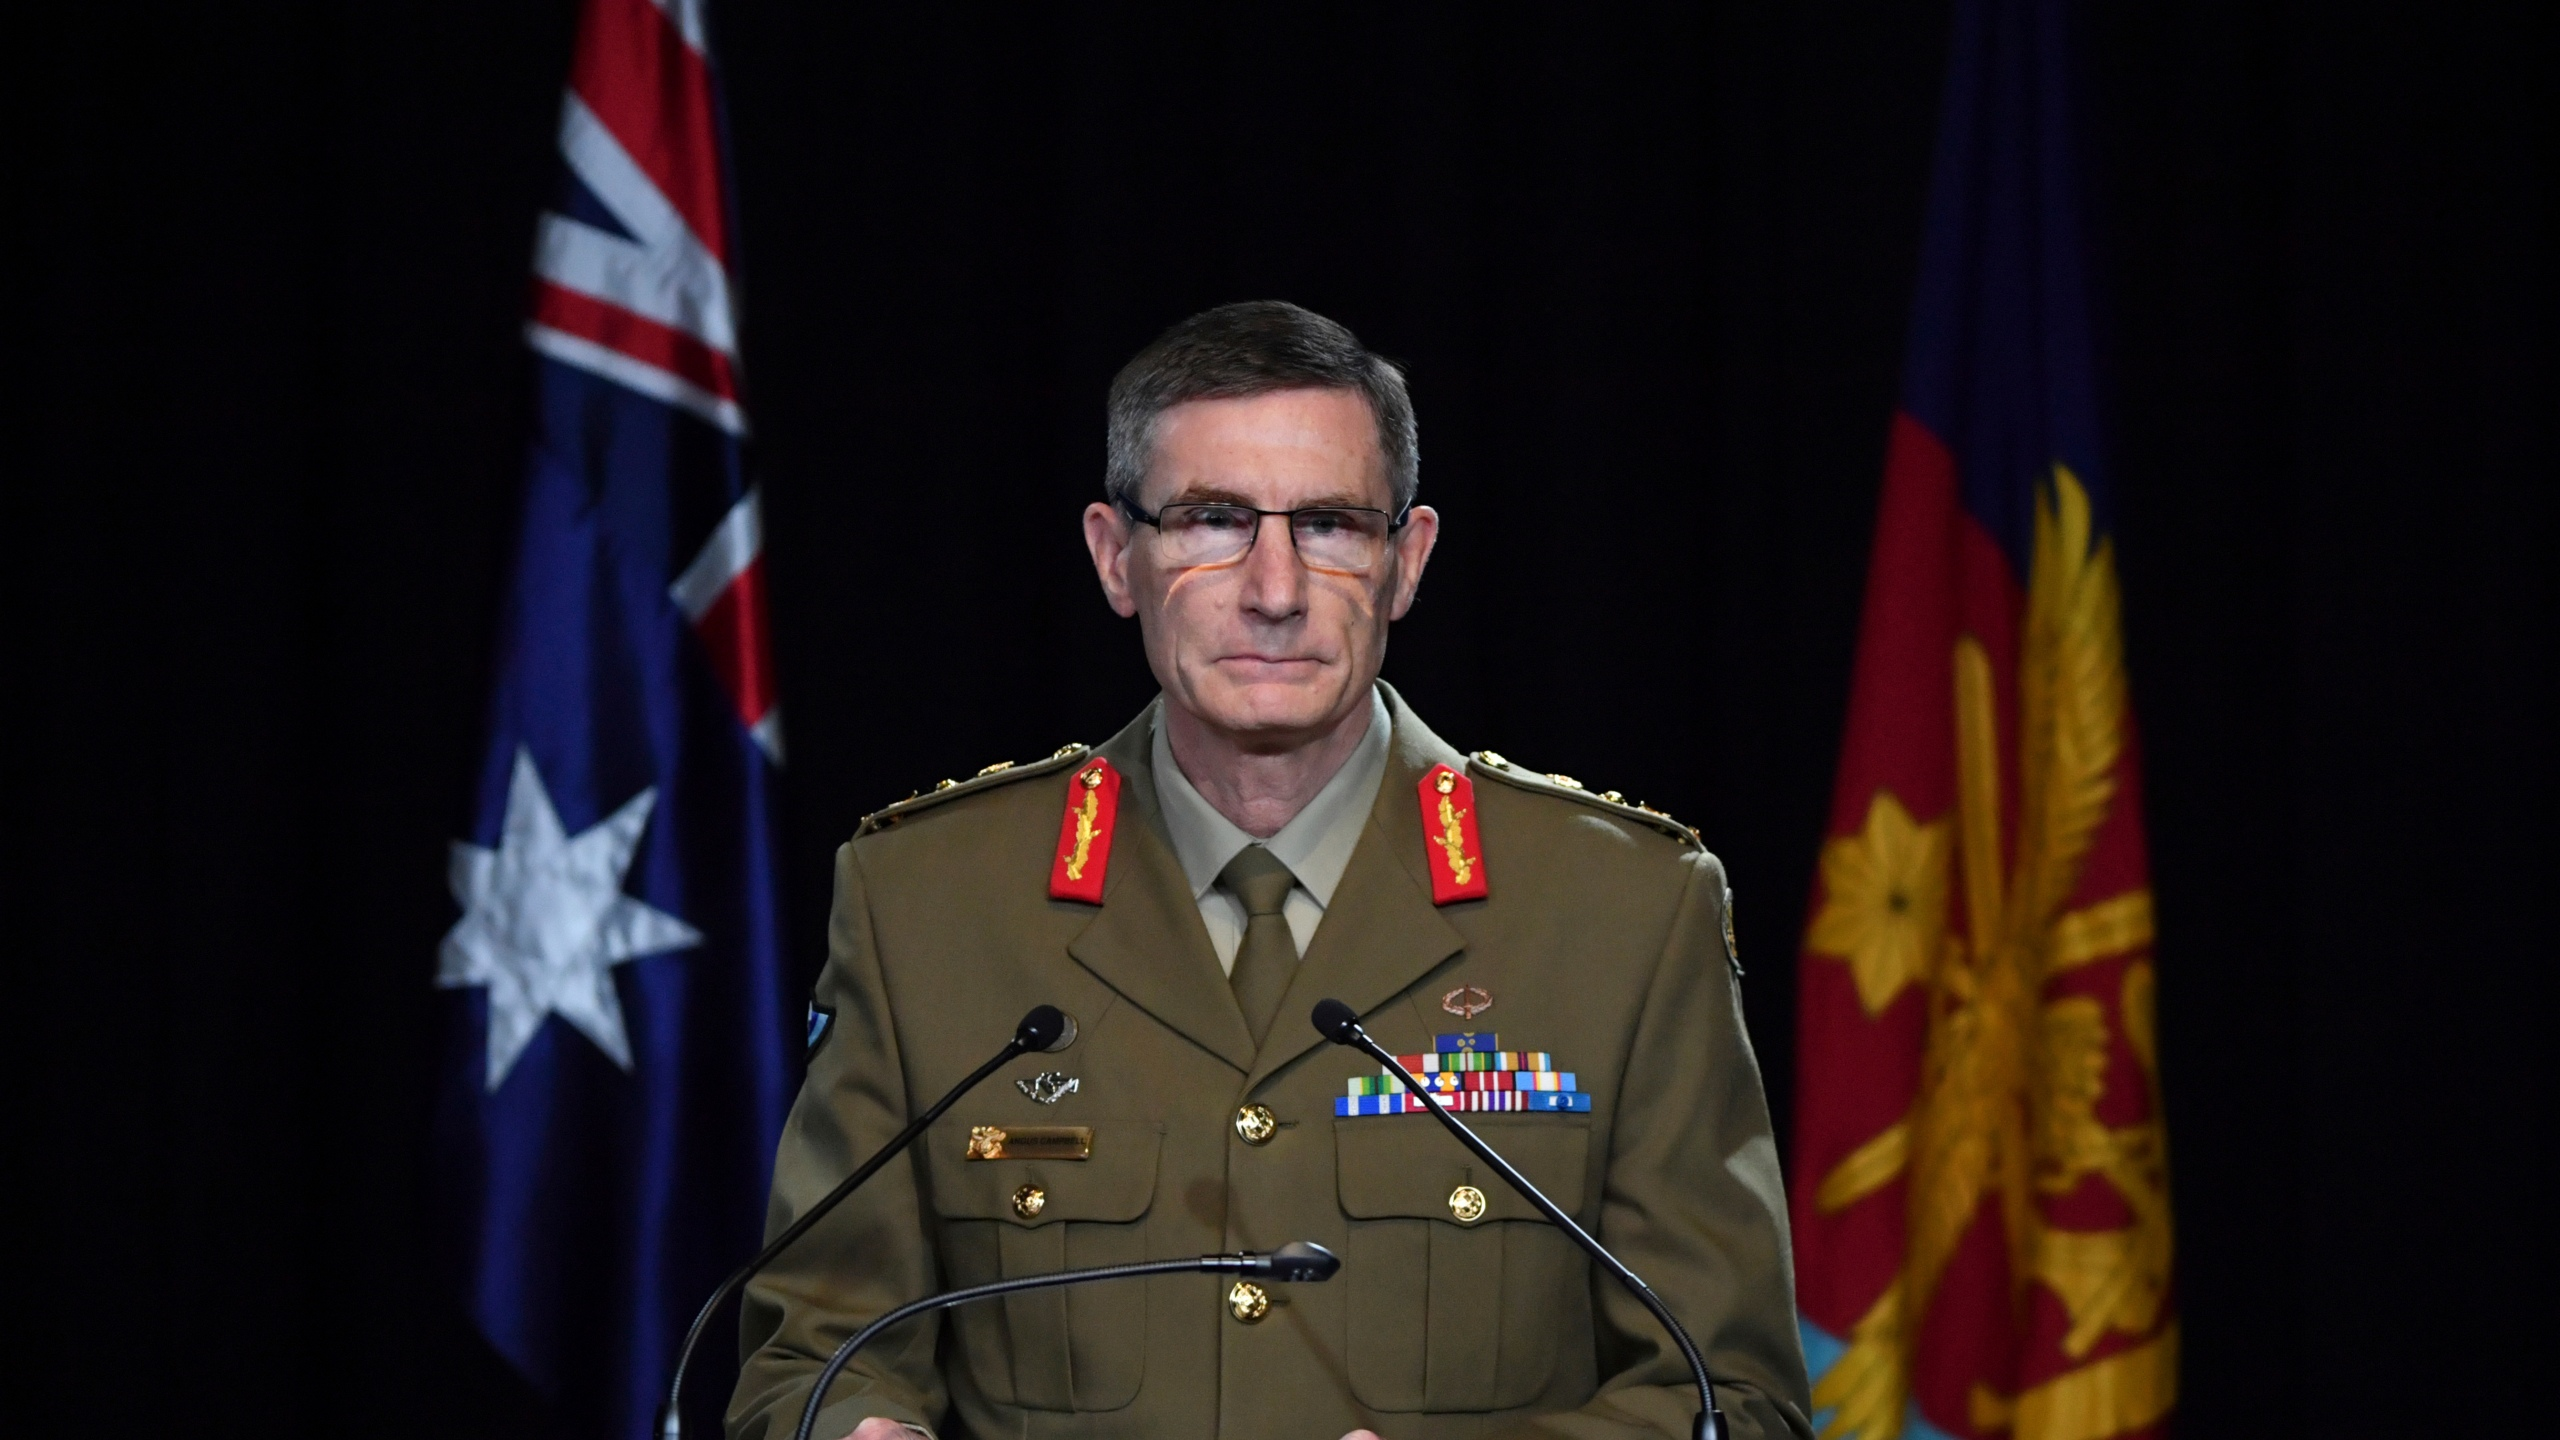 Chief of the Australian Defence Force Gen. Angus Campbell delivers the findings from the Inspector-General of the Australian Defence Force Afghanistan Inquiry, in Canberra, Thursday, Nov. 19, 2020. (Mick Tsikas/Pool Photo via AP)